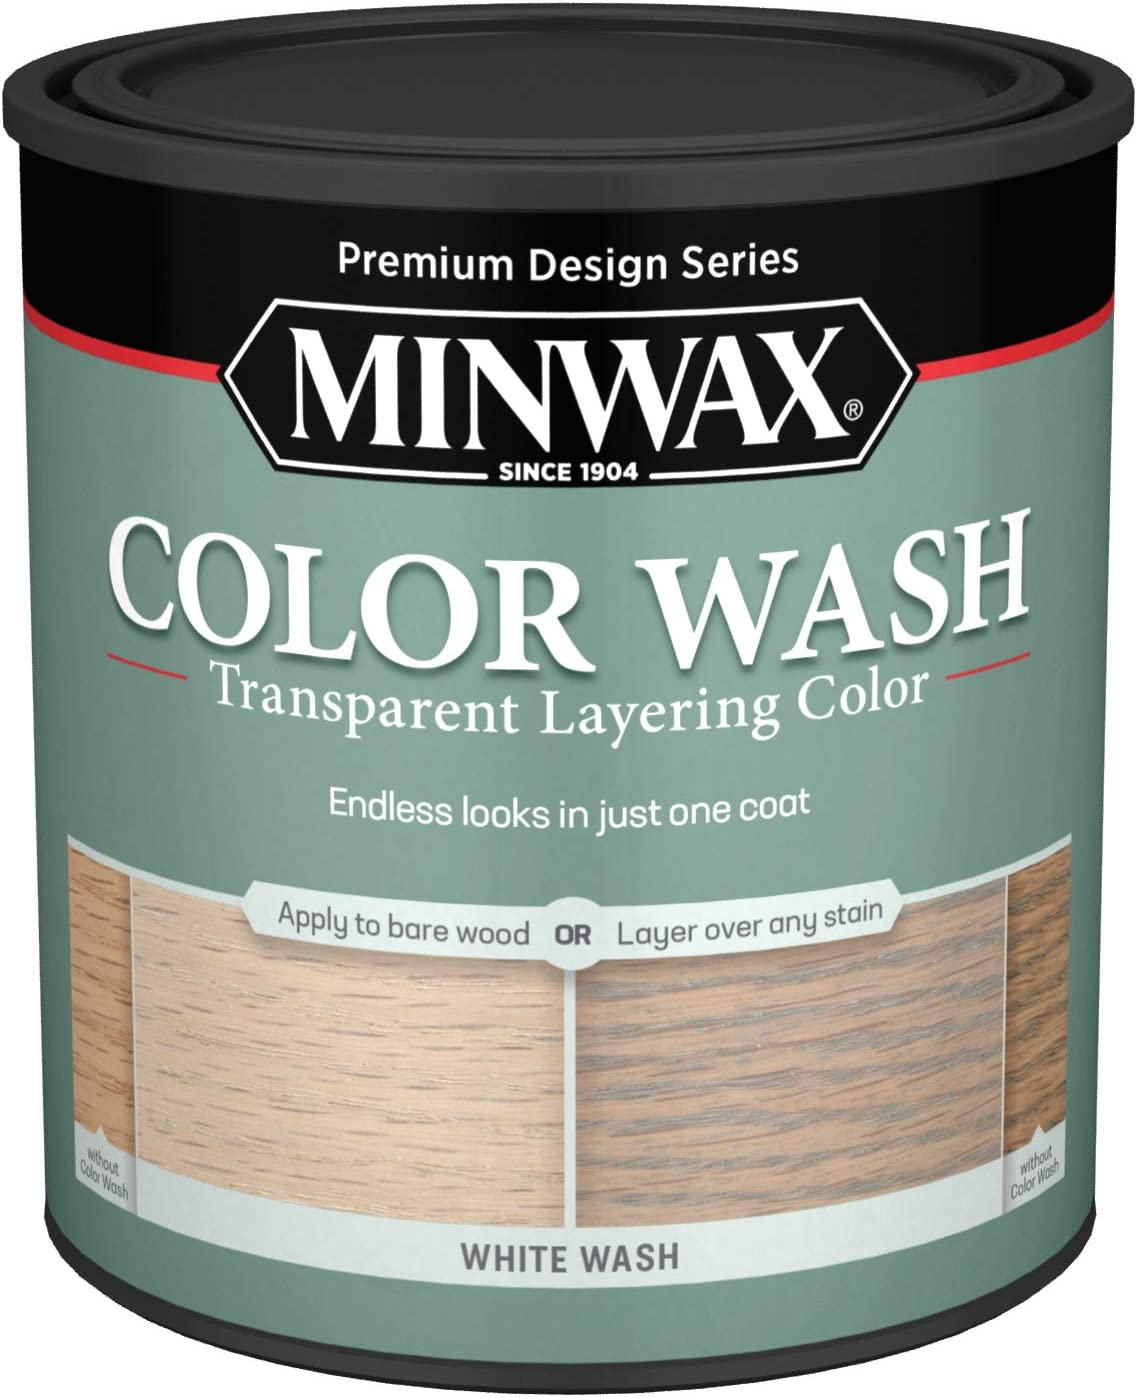 Minwax 618604444 Color Wash Transparent Layering Color White Wash 1 Quart Household Wood Stains Amazon Com